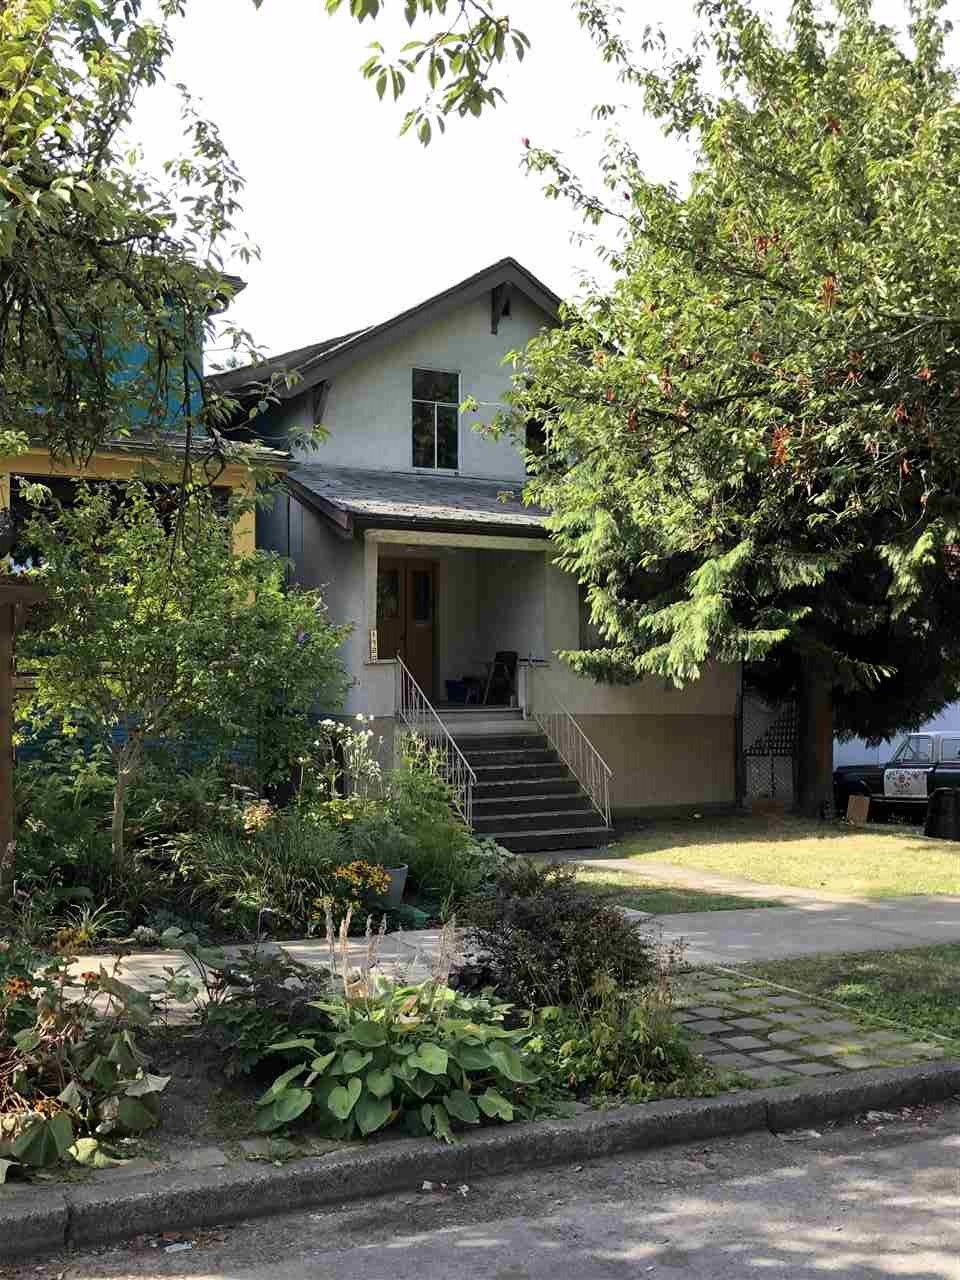 Main Photo: 1920 CHARLES Street in Vancouver: Grandview Woodland House for sale (Vancouver East)  : MLS®# R2397976